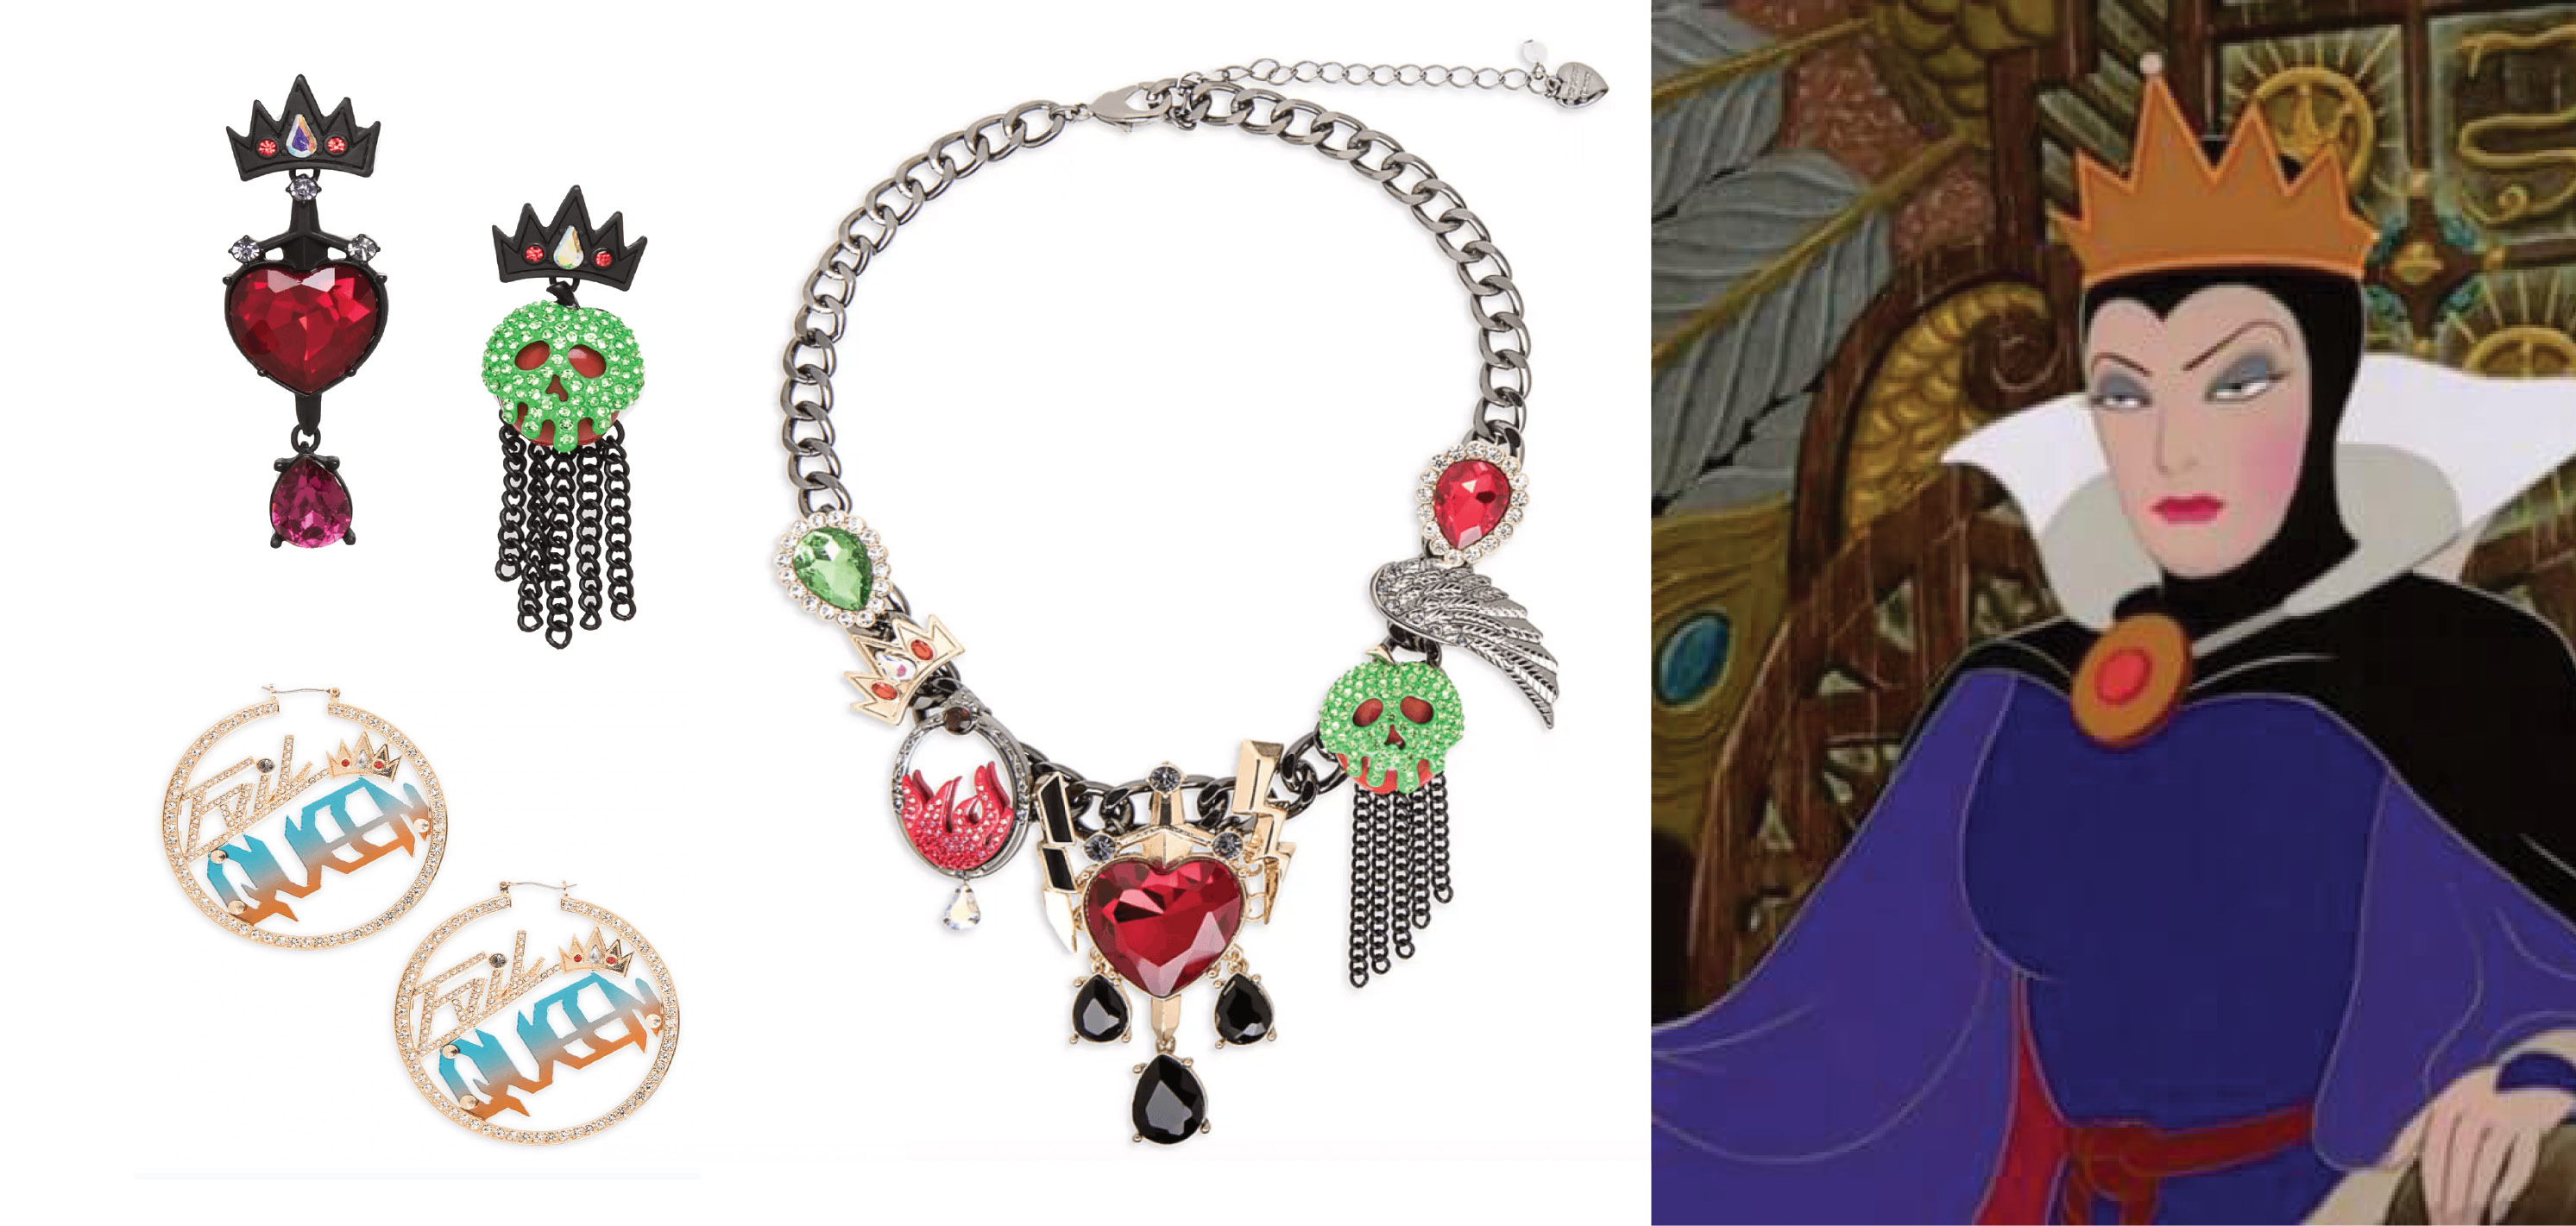 BETSEY JOHNSON DELIVERS WICKED DISNEY-INSPIRED EVIL QUEEN COLLECTION